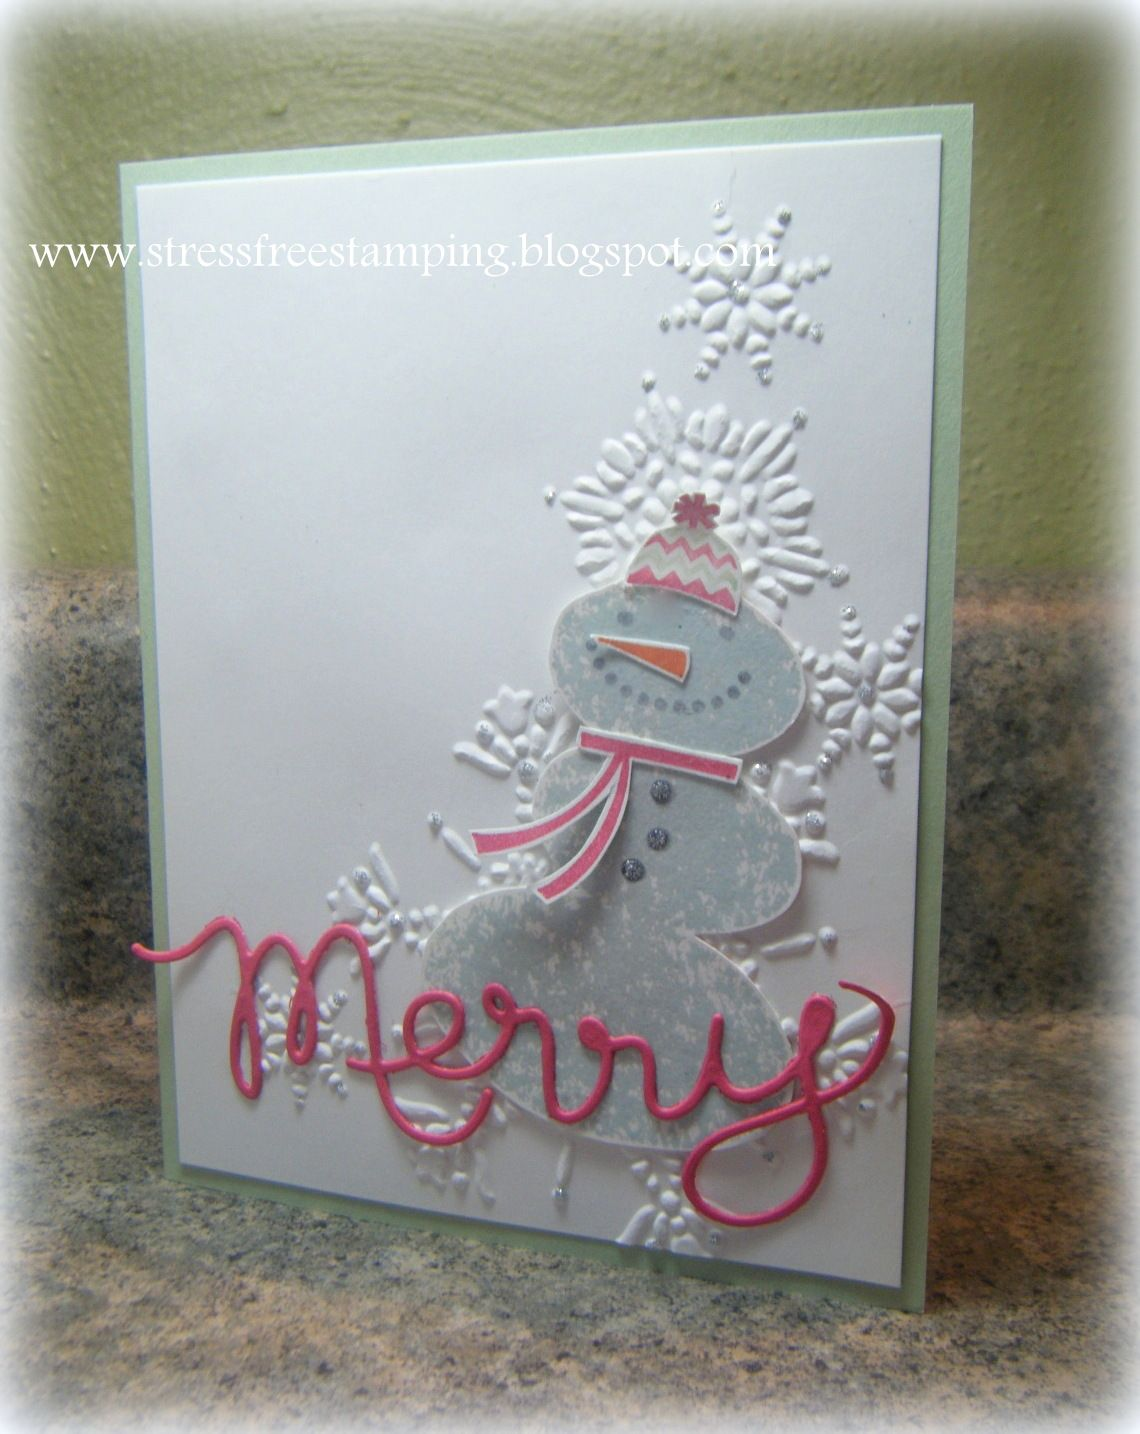 Stress-Free Stamping with Shana: Christmas in August